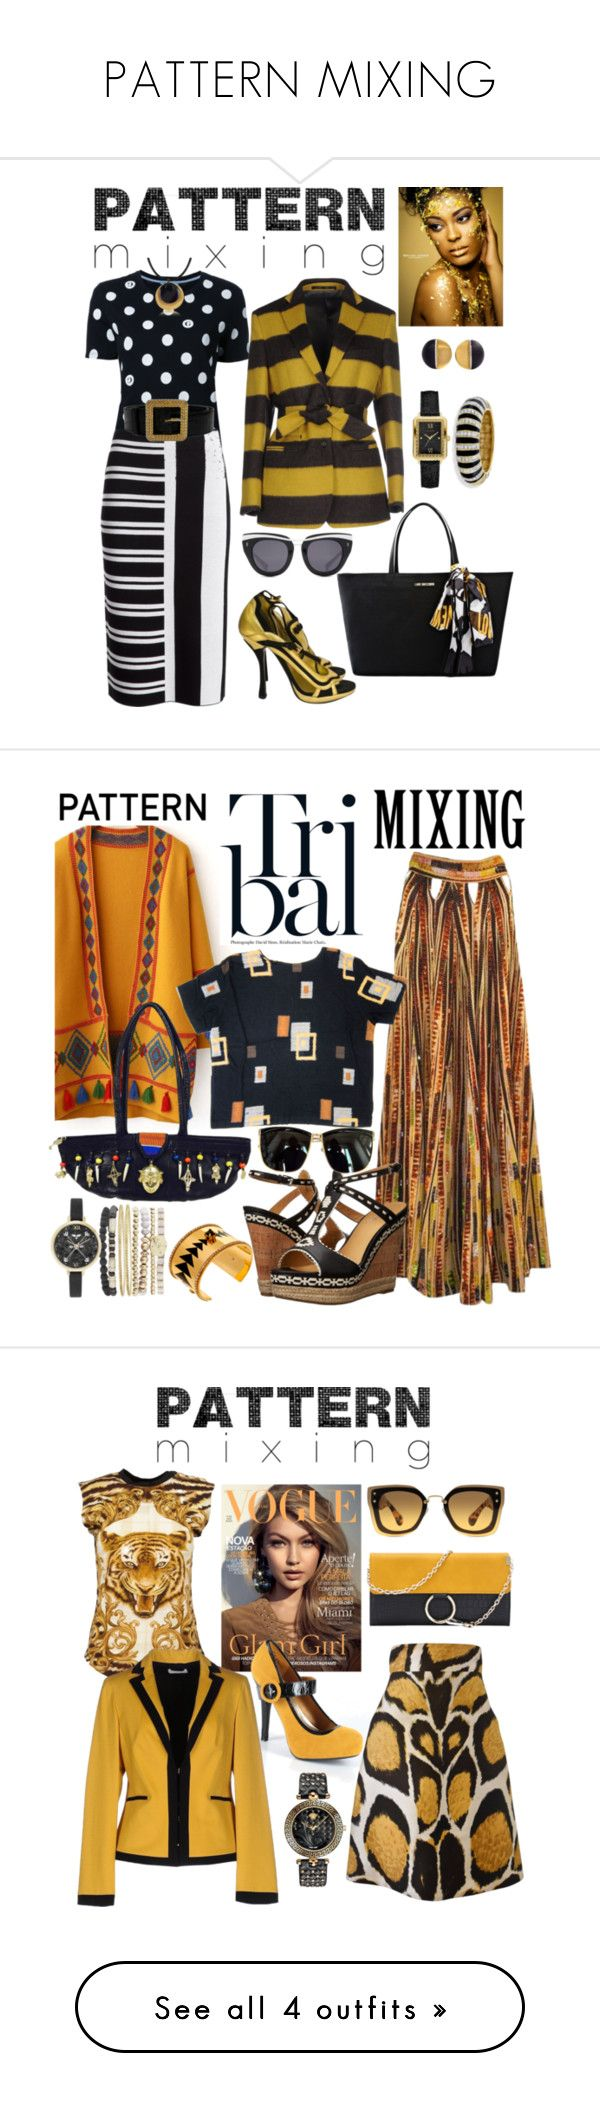 """""""PATTERN MIXING"""" by carolsha ❤ liked on Polyvore featuring Guild Prime, Theory, Mauro Grifoni, Chanel, Stefano Patriarchi, Prada, Love Moschino, HOOK LDN, Kenneth Jay Lane and Maria Francesca Pepe"""